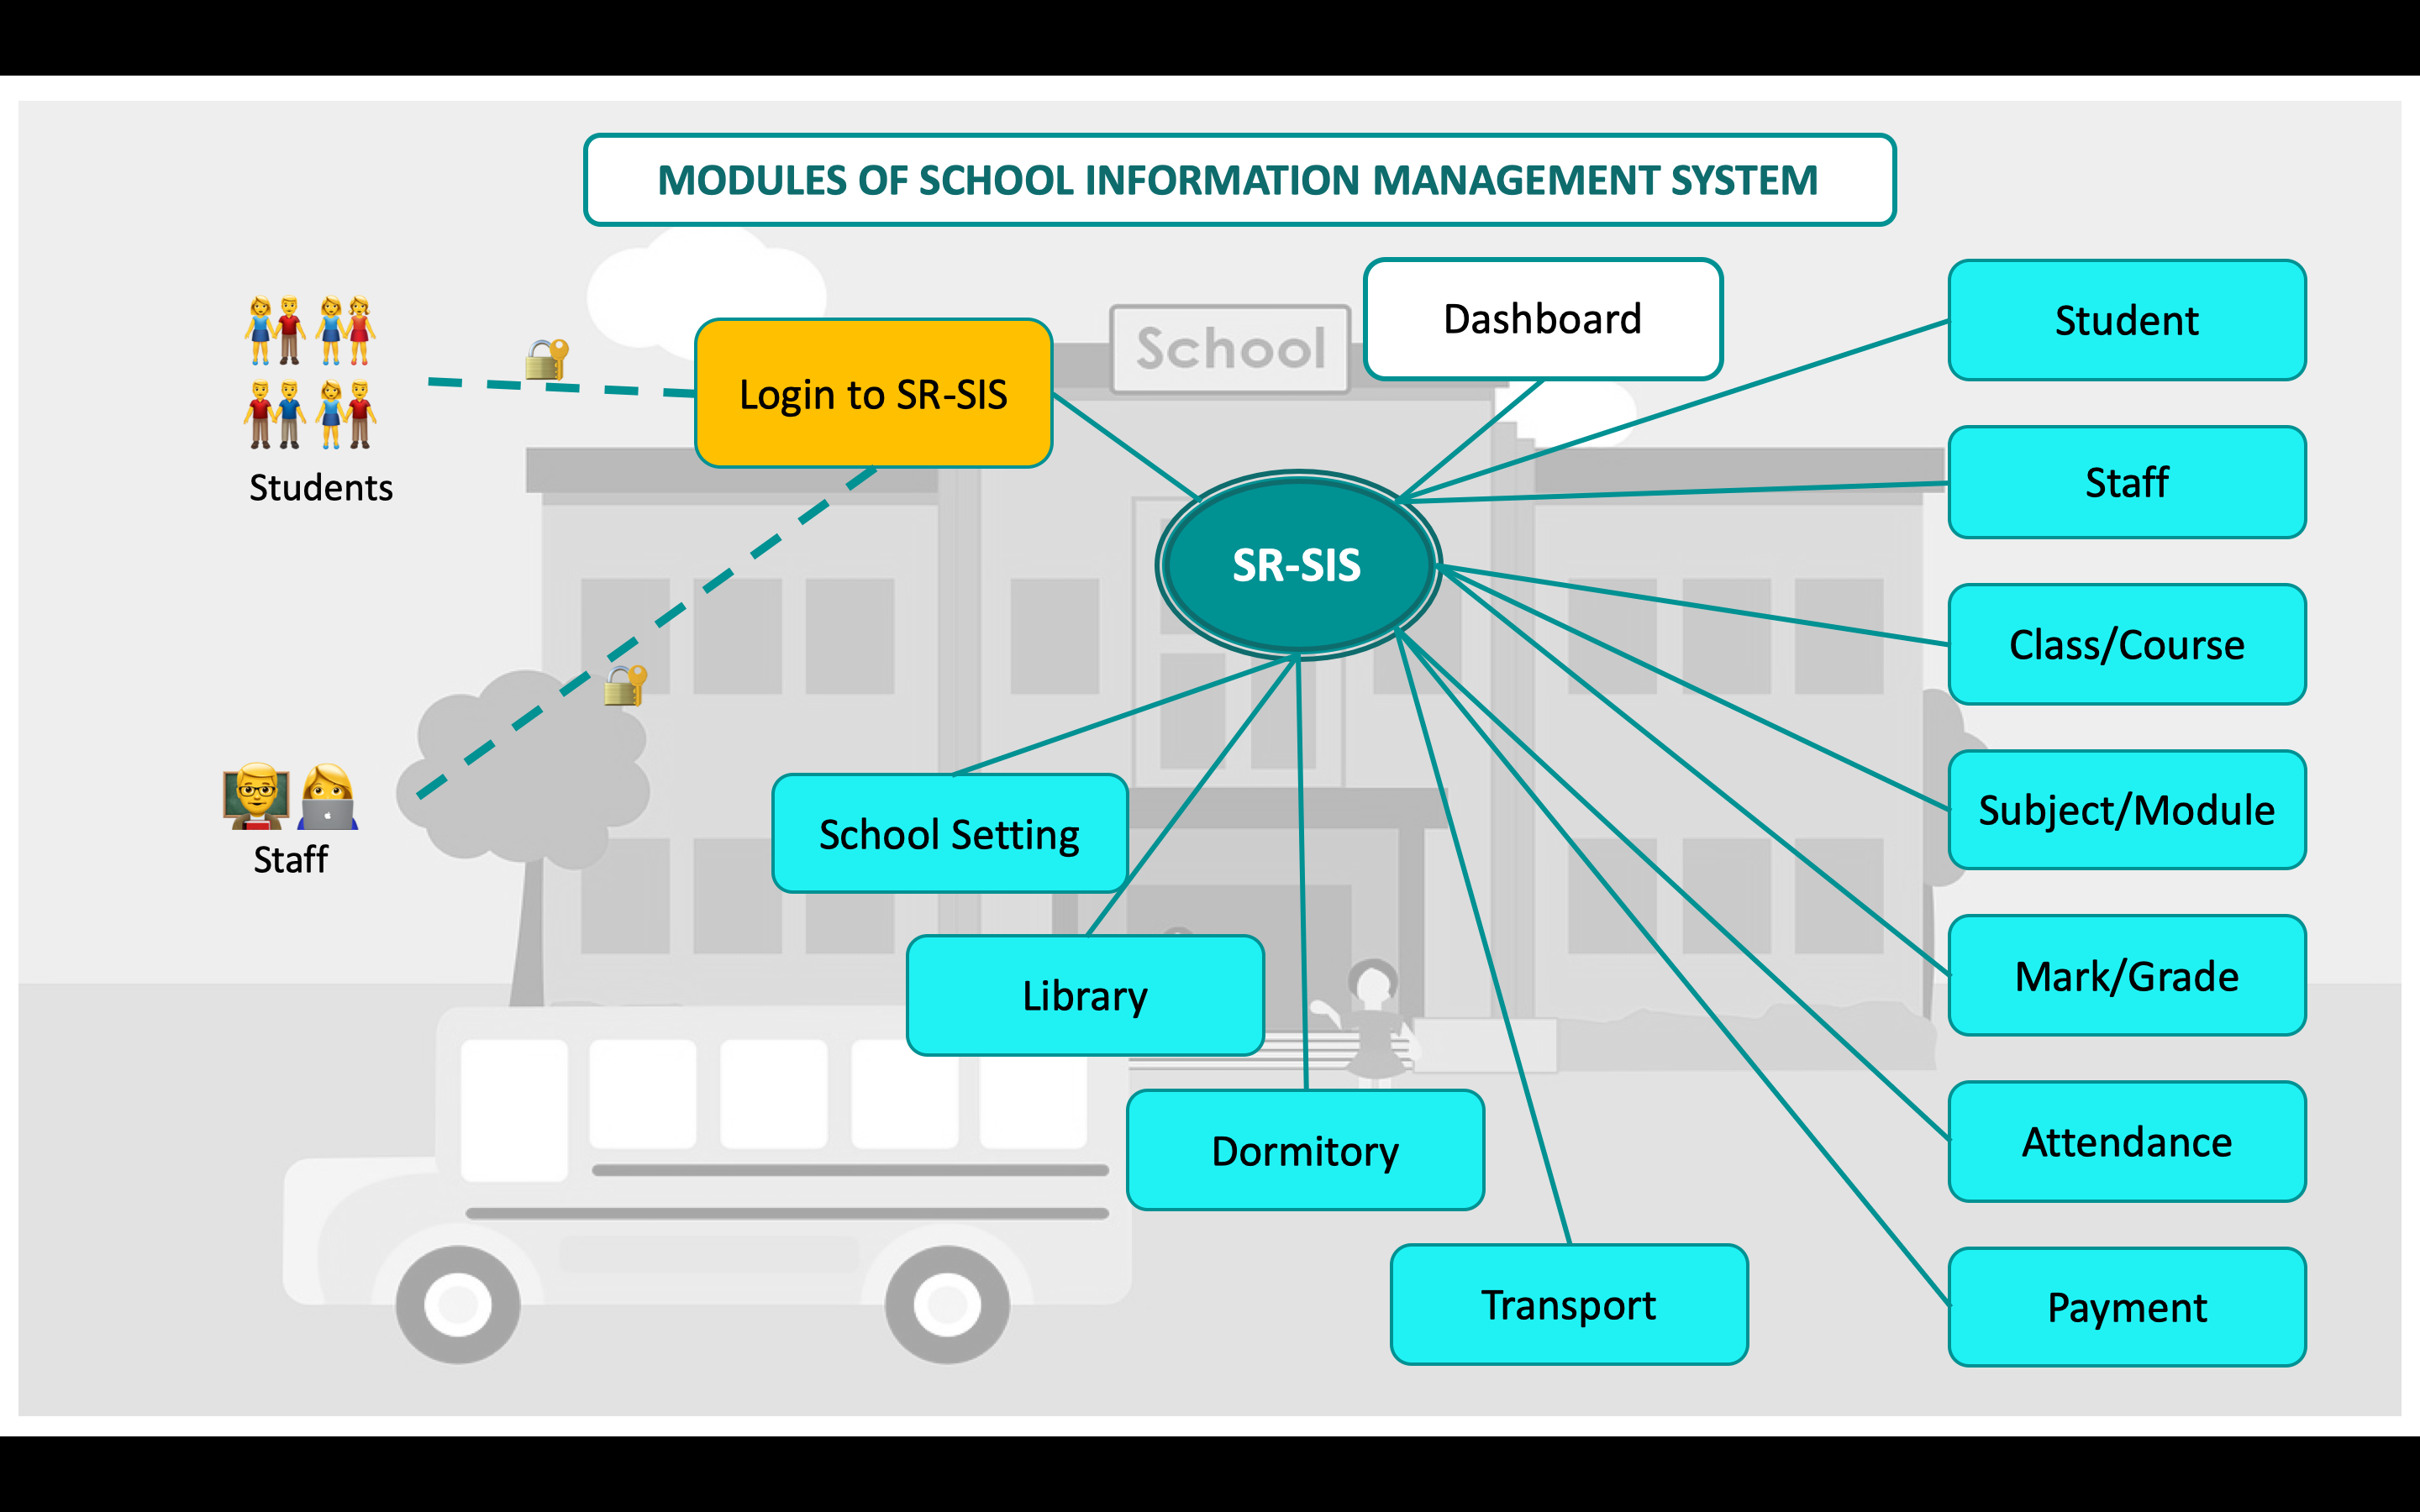 Modules in School Information Management System